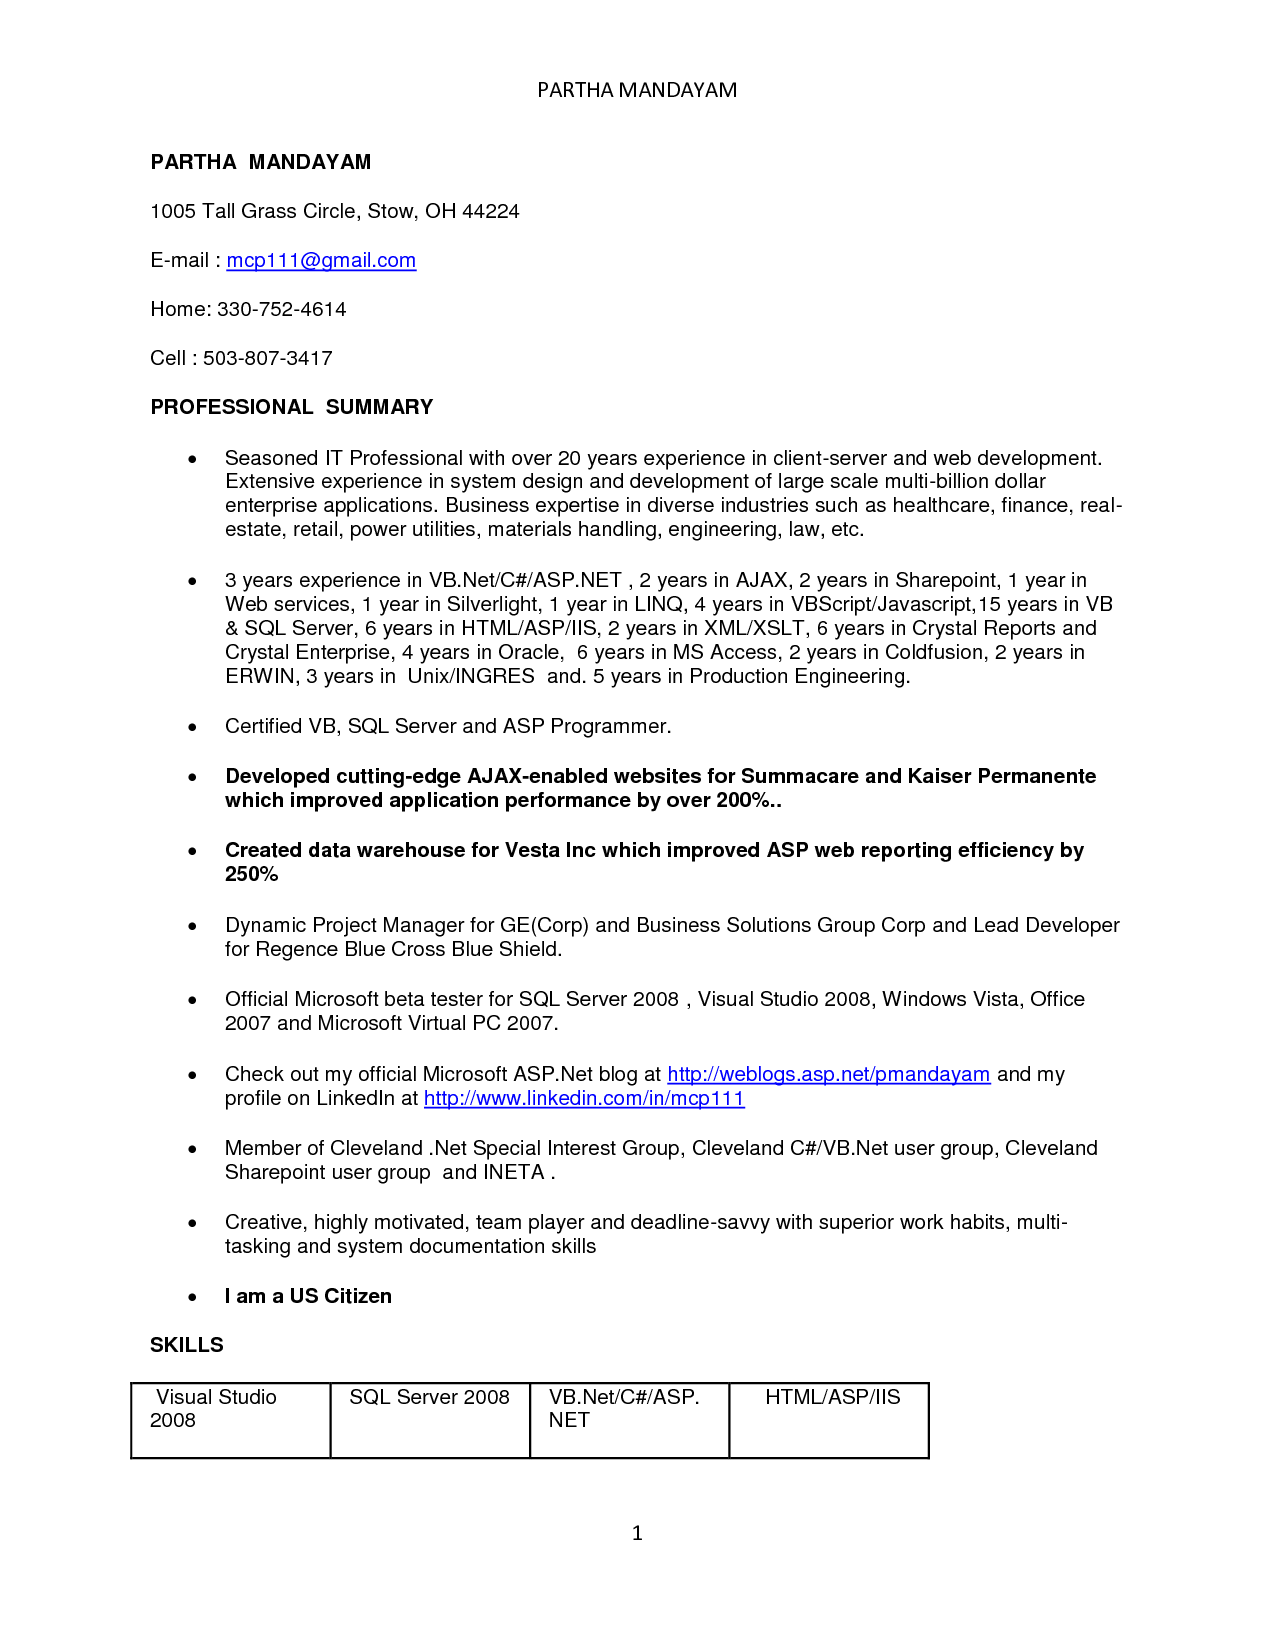 Resume Format For 1 Year Experienced Java Developer | Resume Format ...